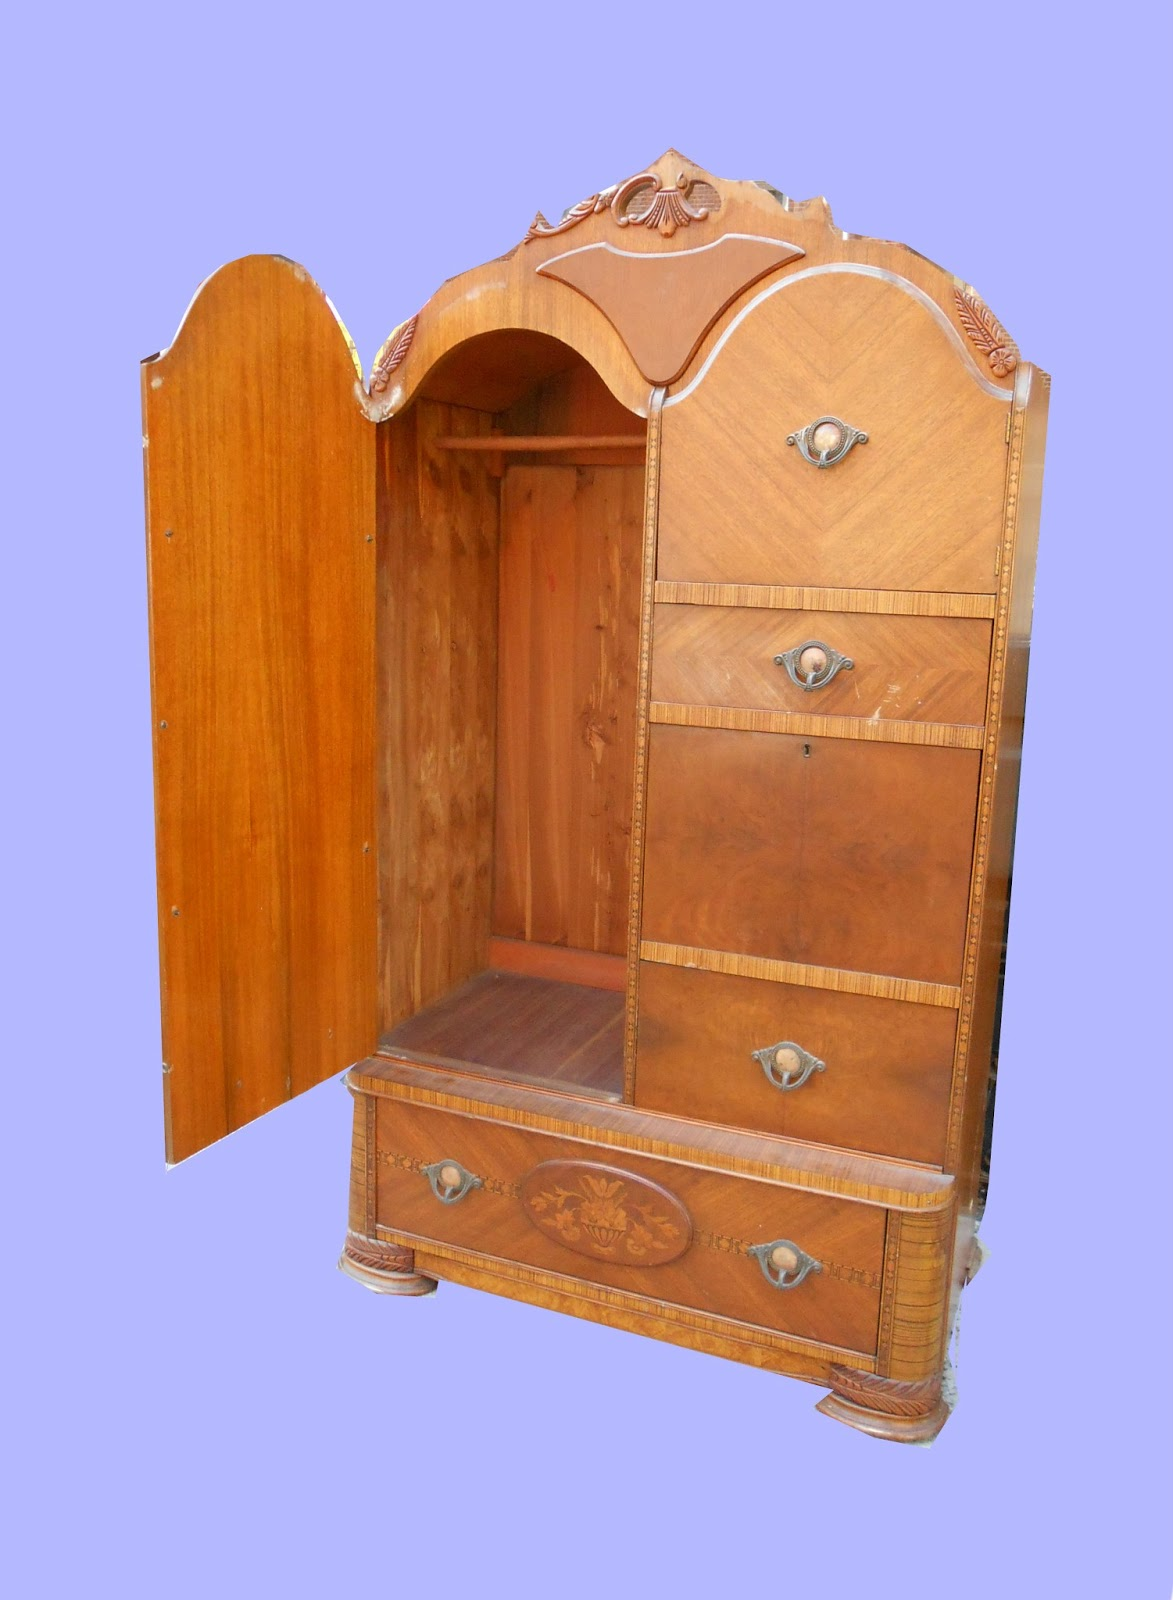 1930s Waterfall Style Cedar Chifferobe w/Drop-Down Desk SOLD - Uhuru Furniture & Collectibles: 1930s Waterfall Style Cedar